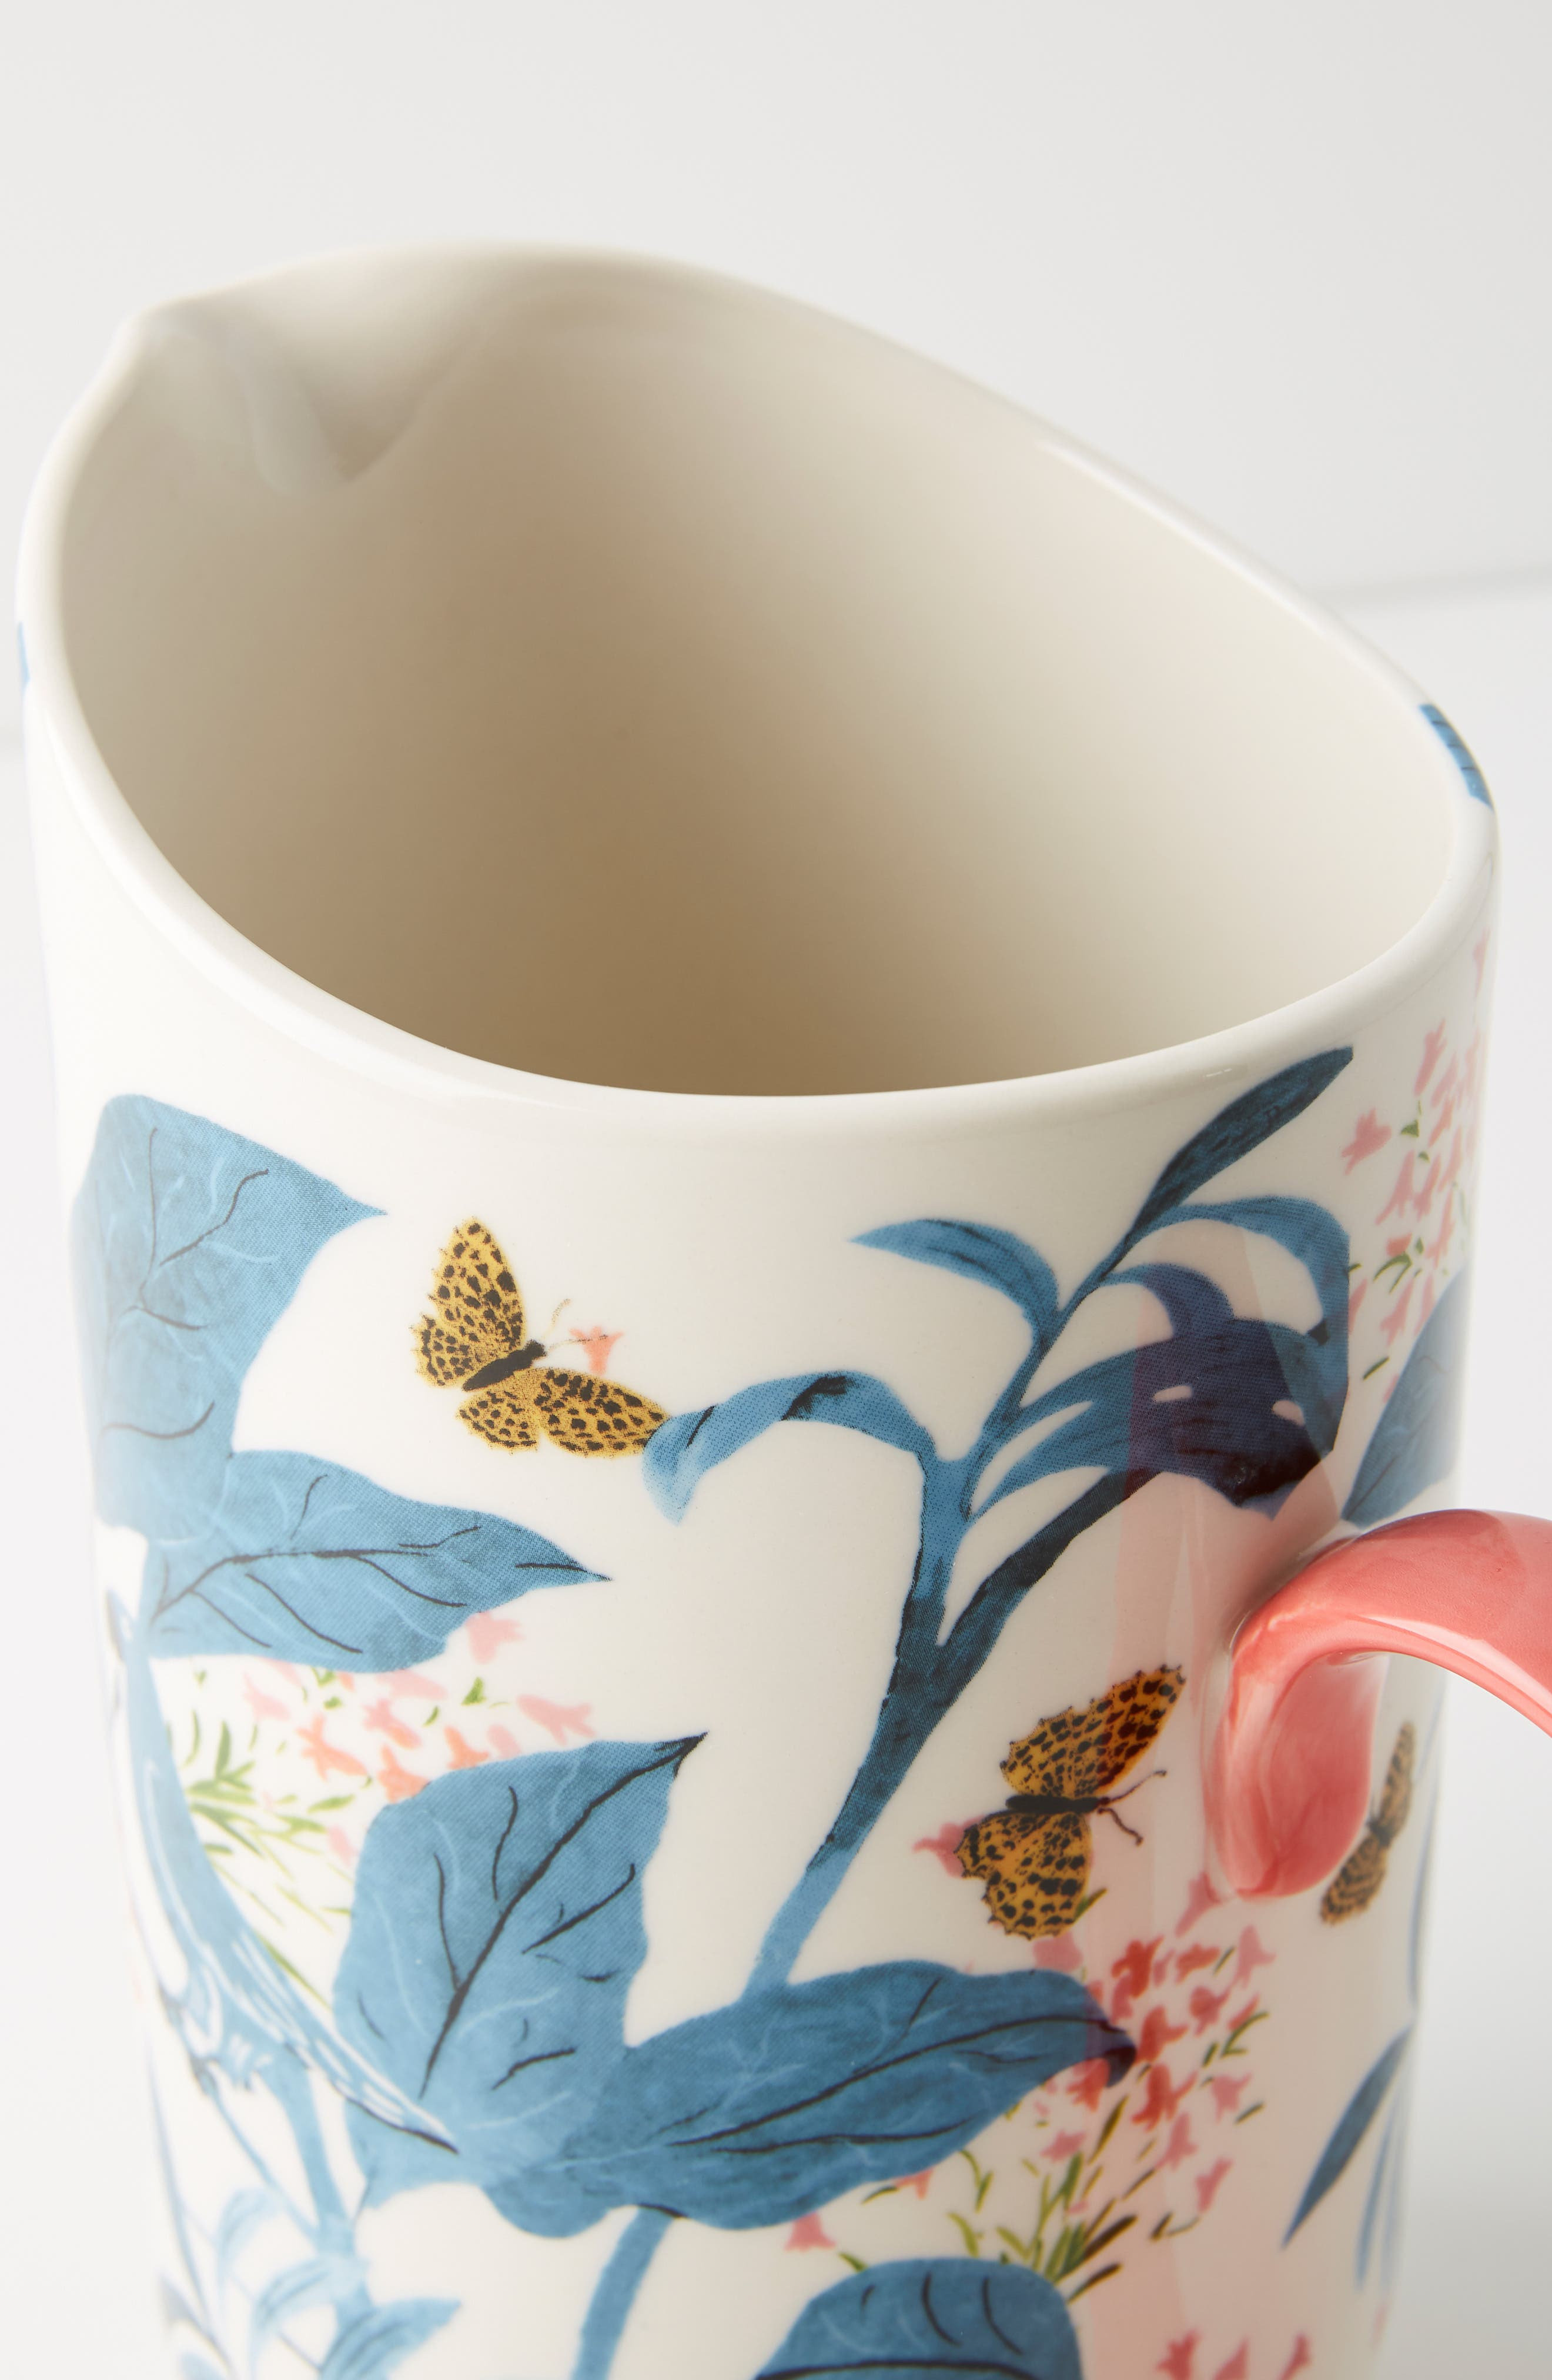 ANTHROPOLOGIE,                             Paule Marrot Butterfly Pitcher,                             Alternate thumbnail 3, color,                             BLUE